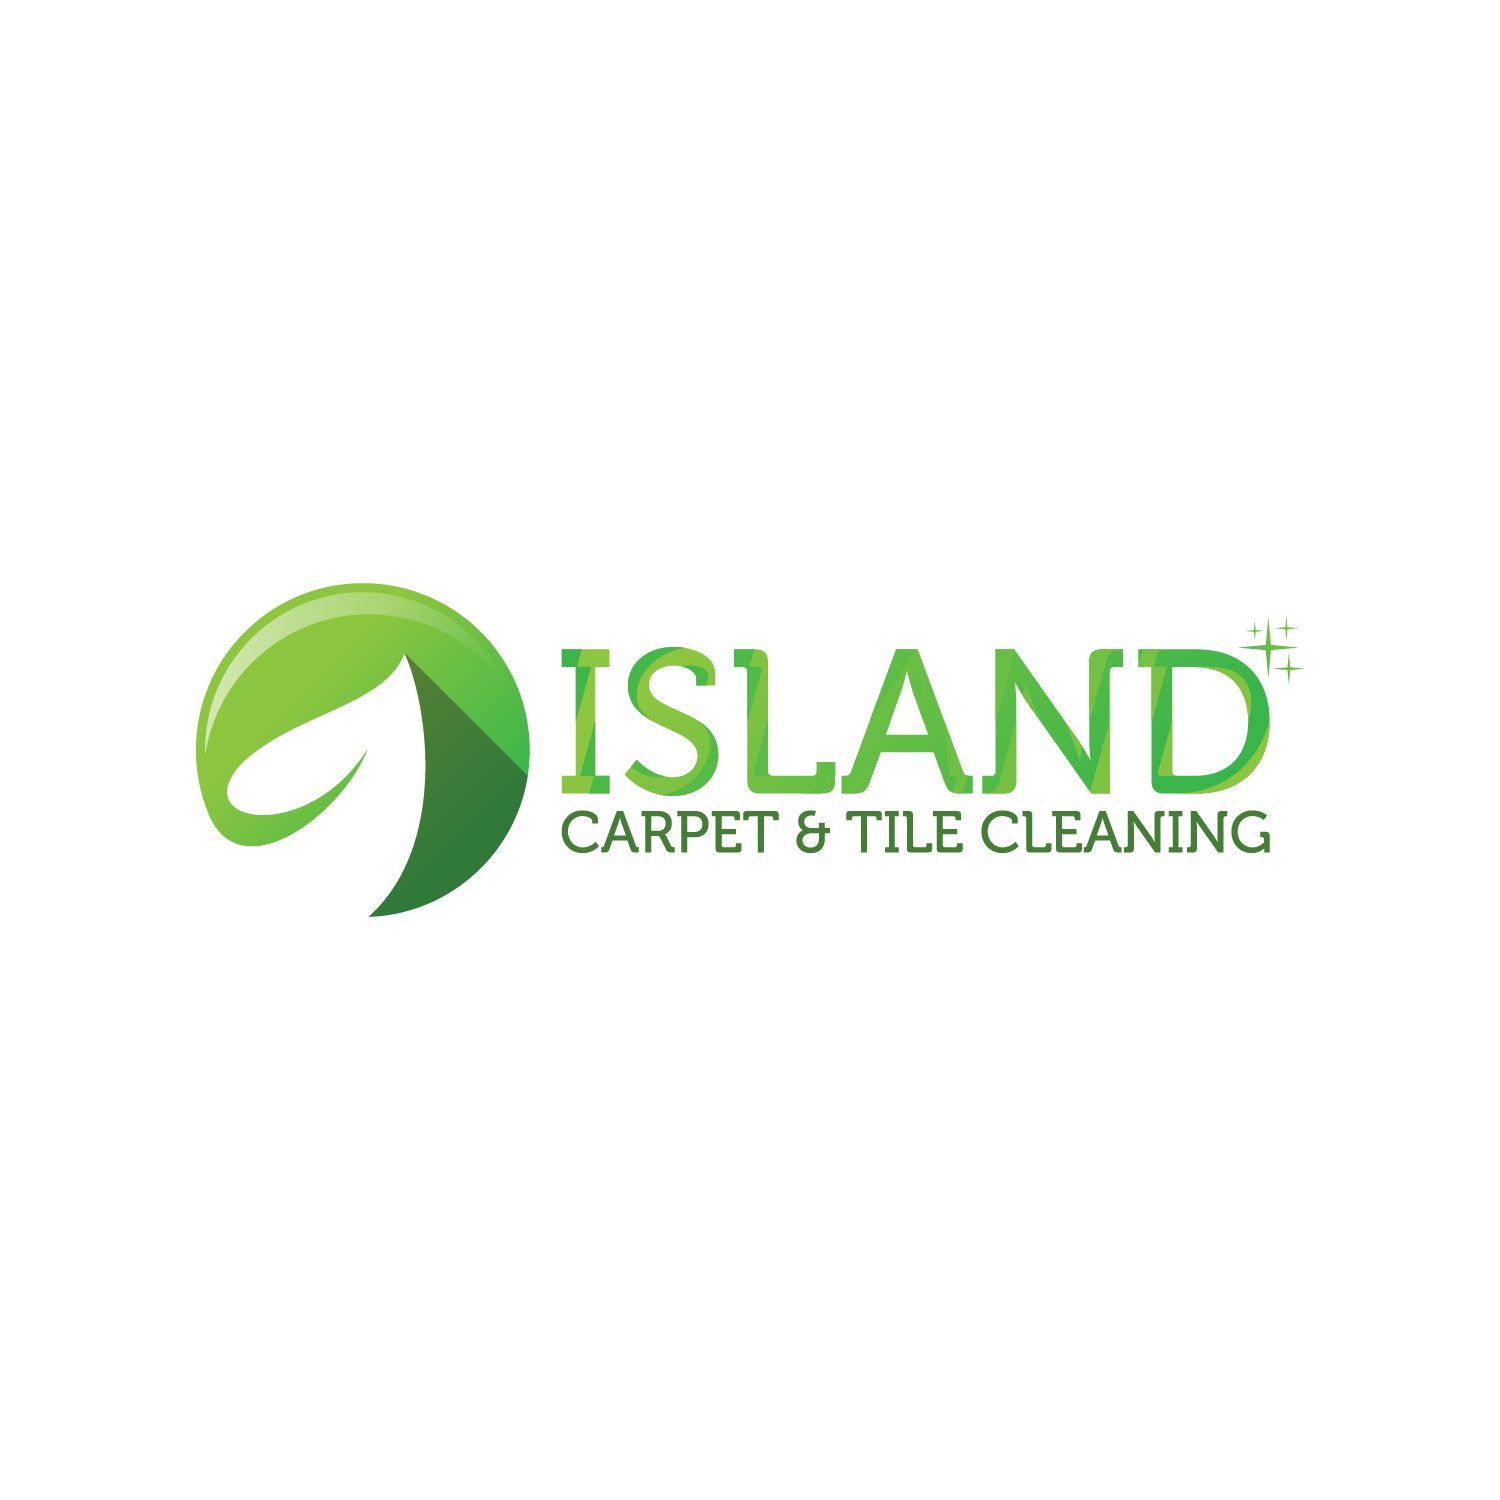 Island Carpet & Tile Cleaning